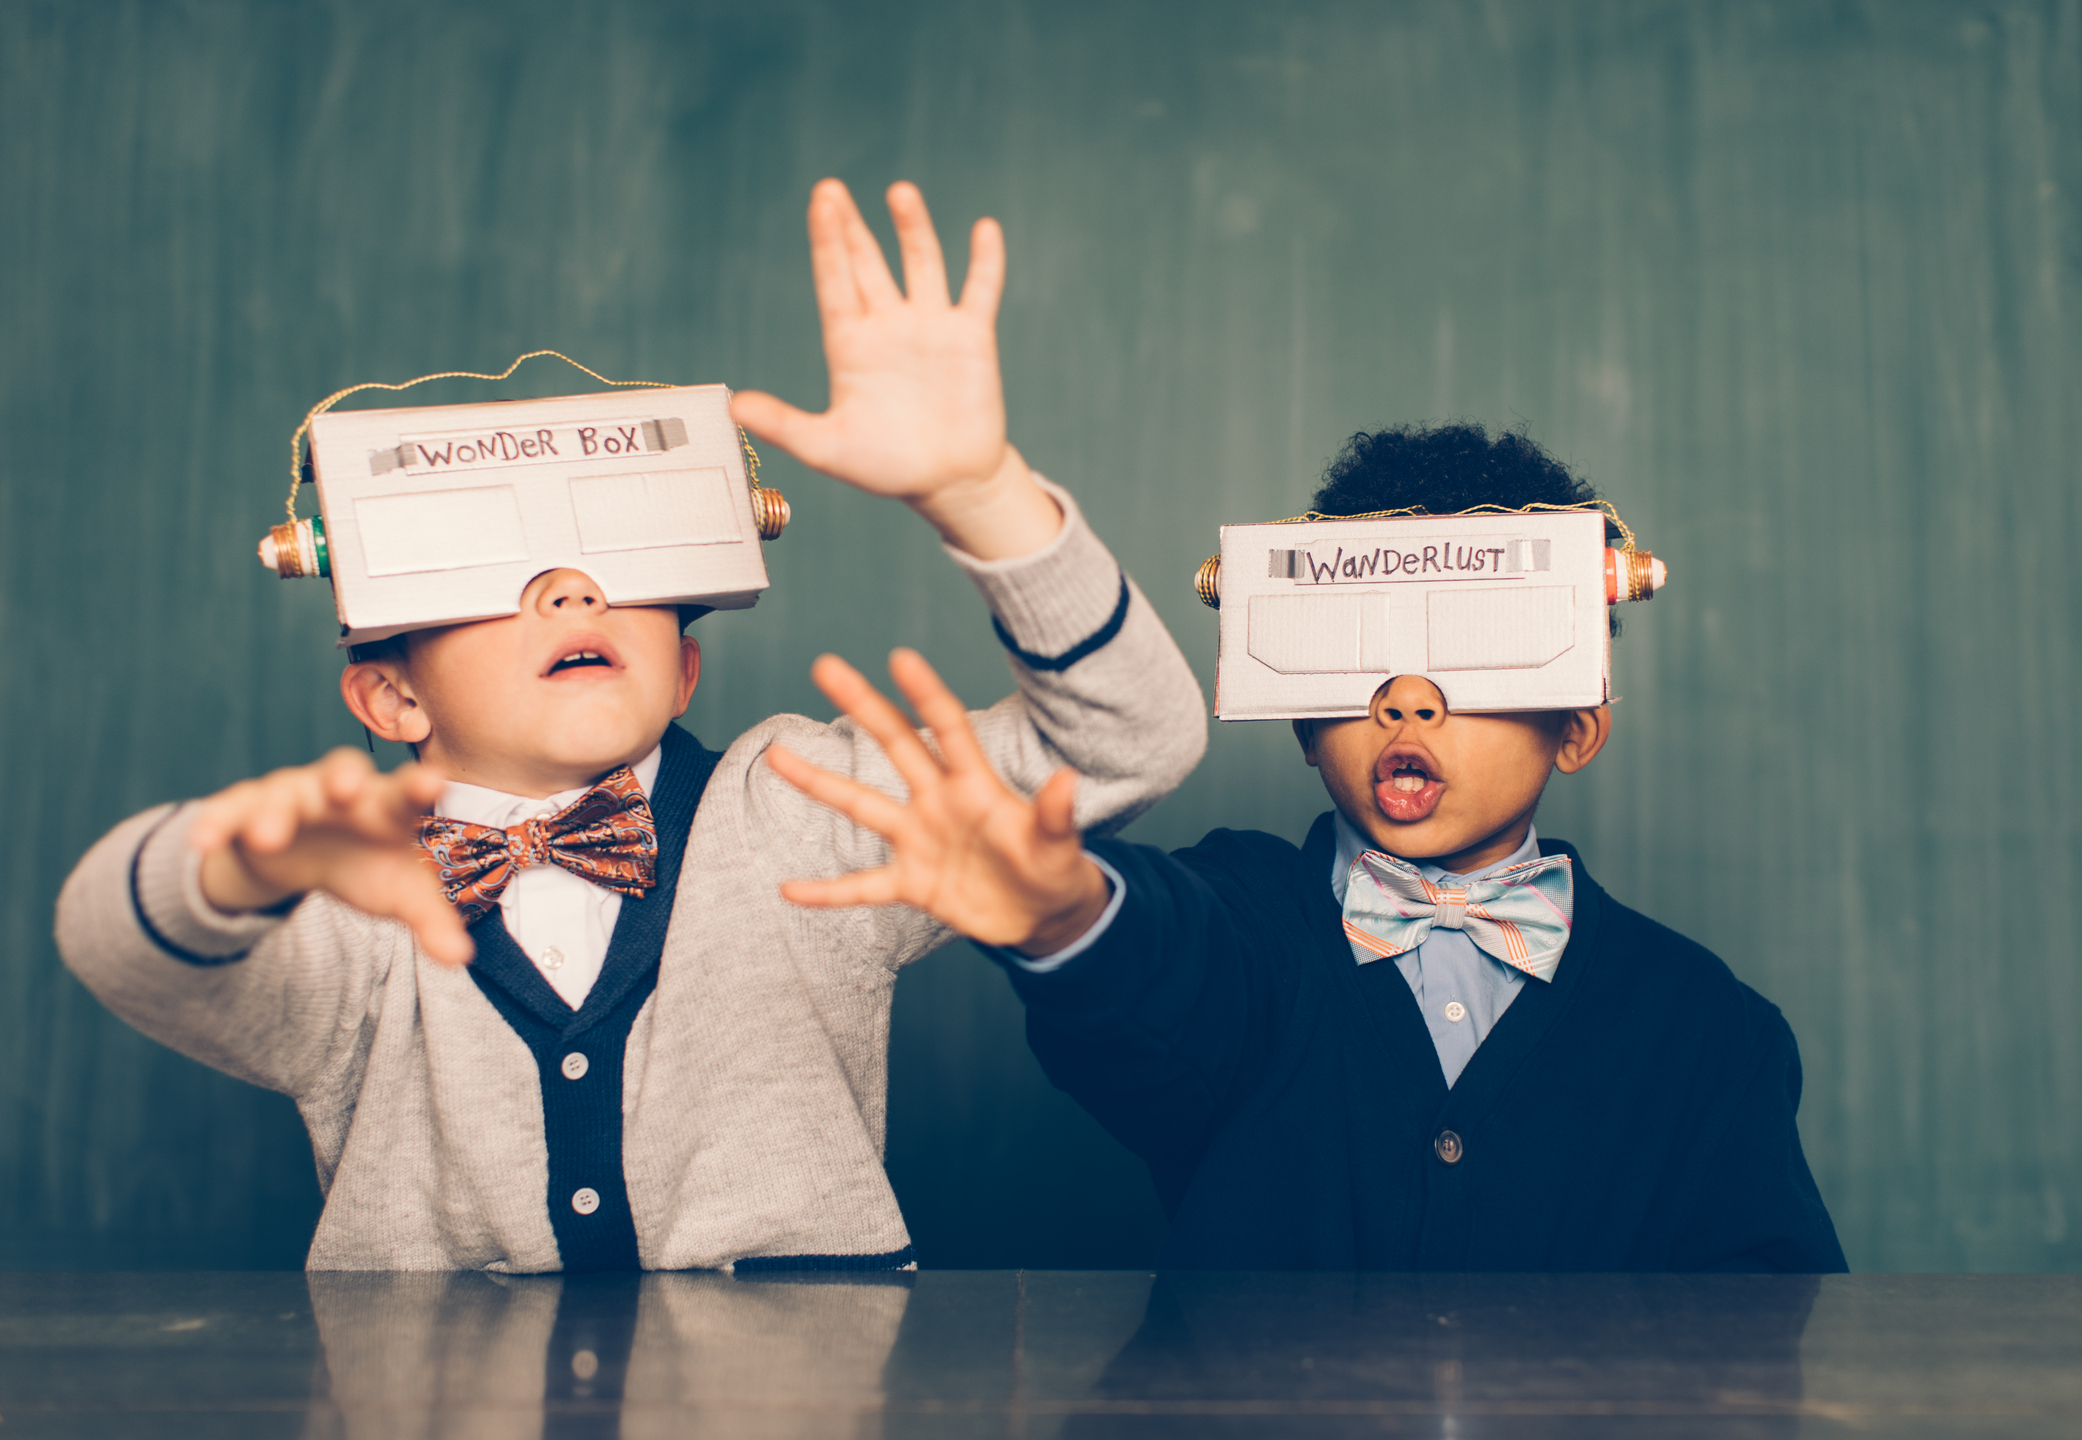 two young kids with homemade AI goggles